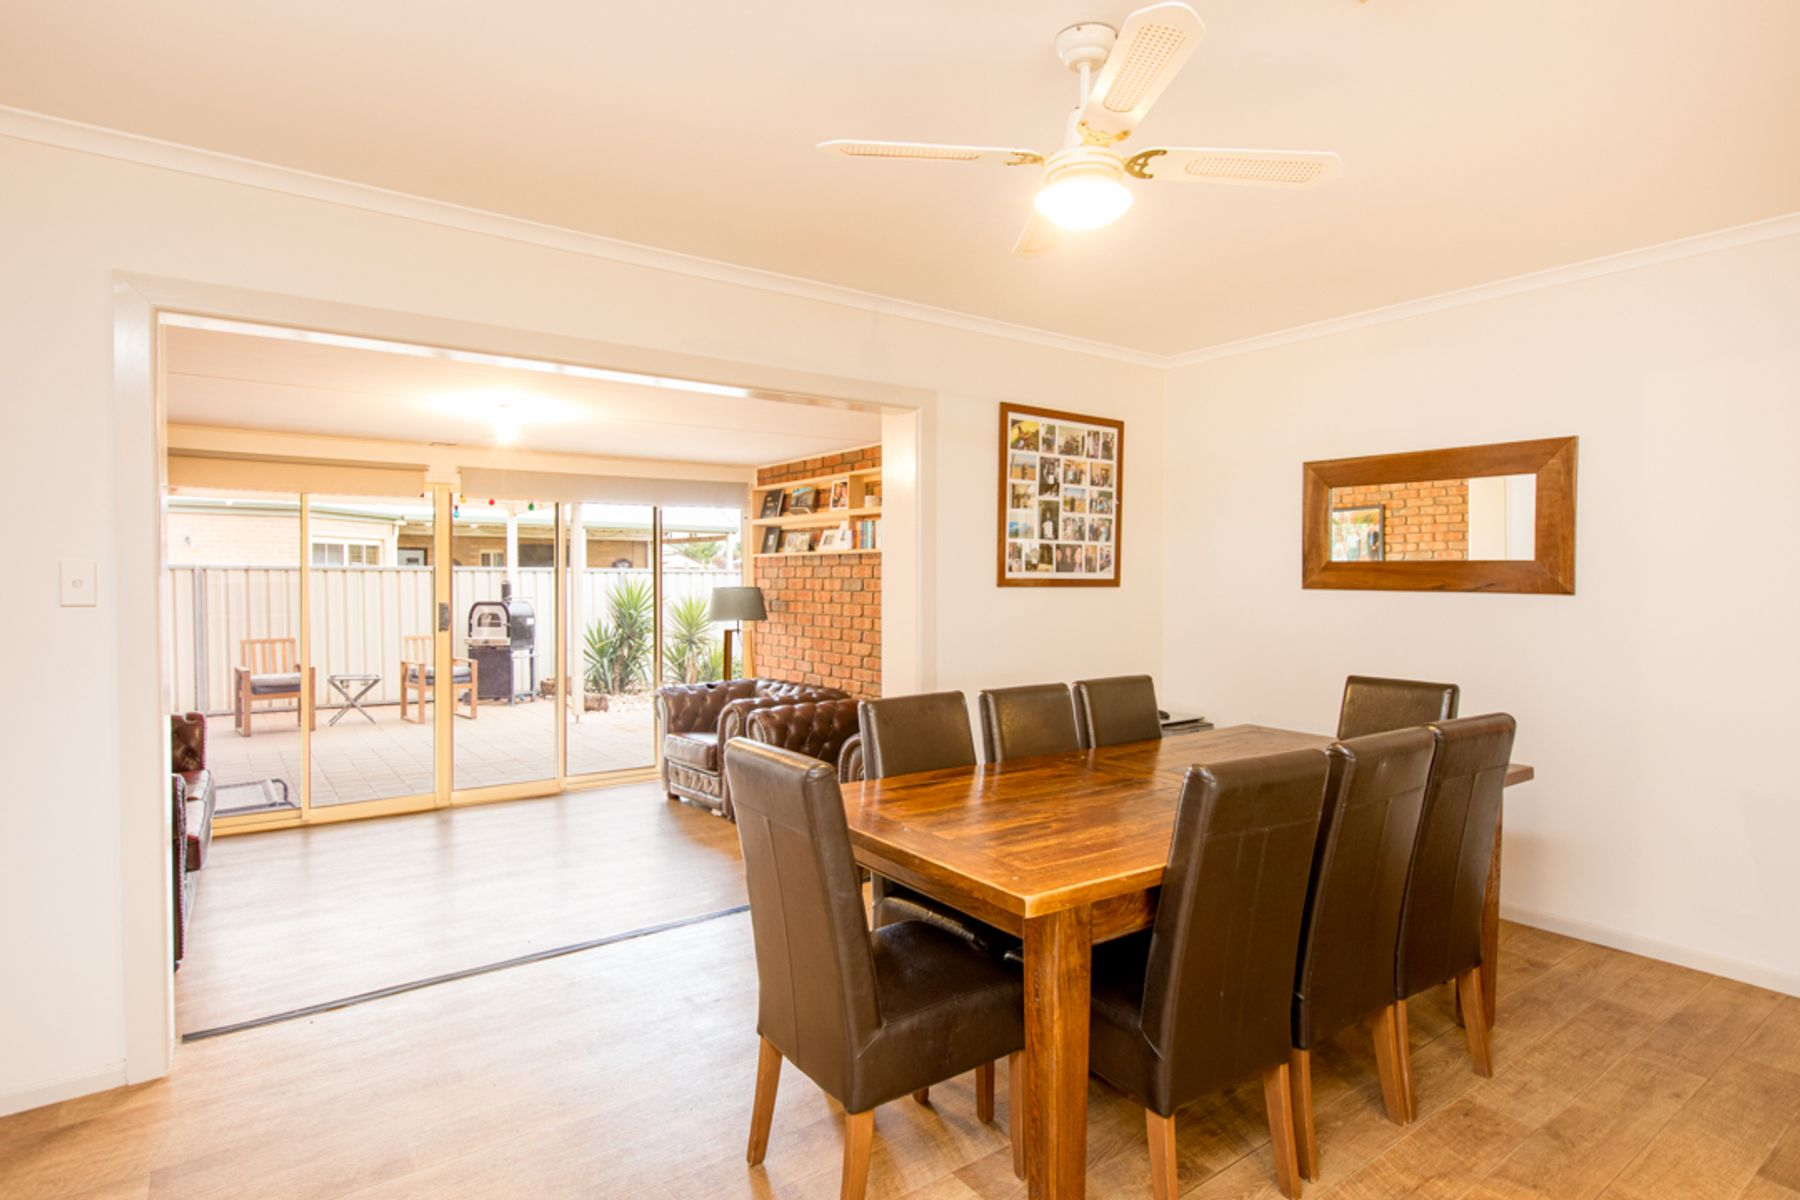 5 Holyoake Way, Mildura, VIC 3500